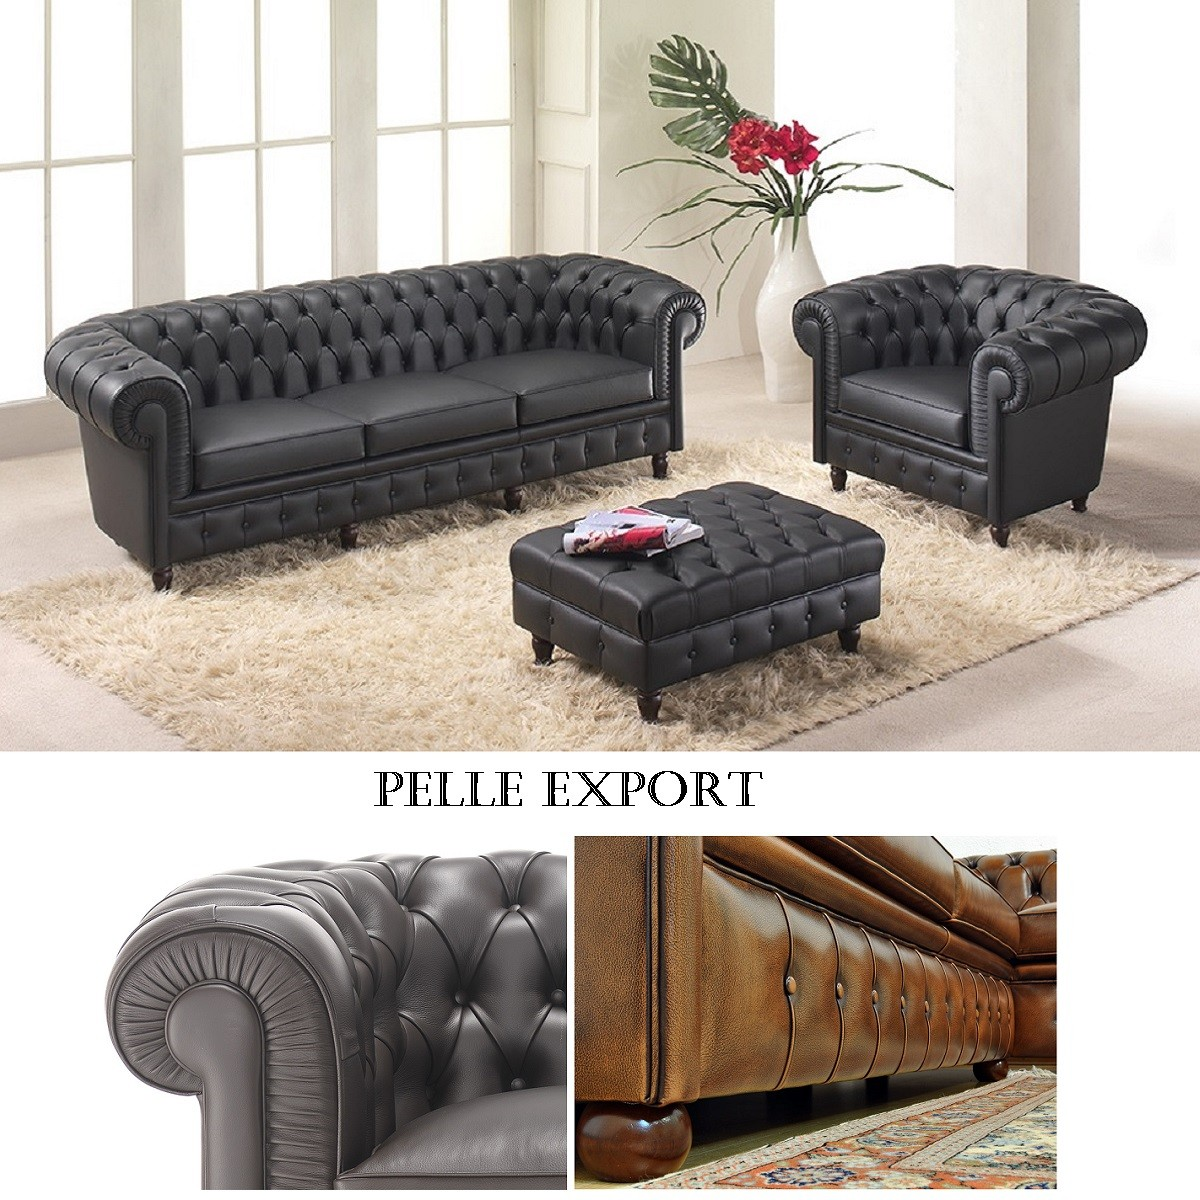 Compo Chester '900 Pelle Export